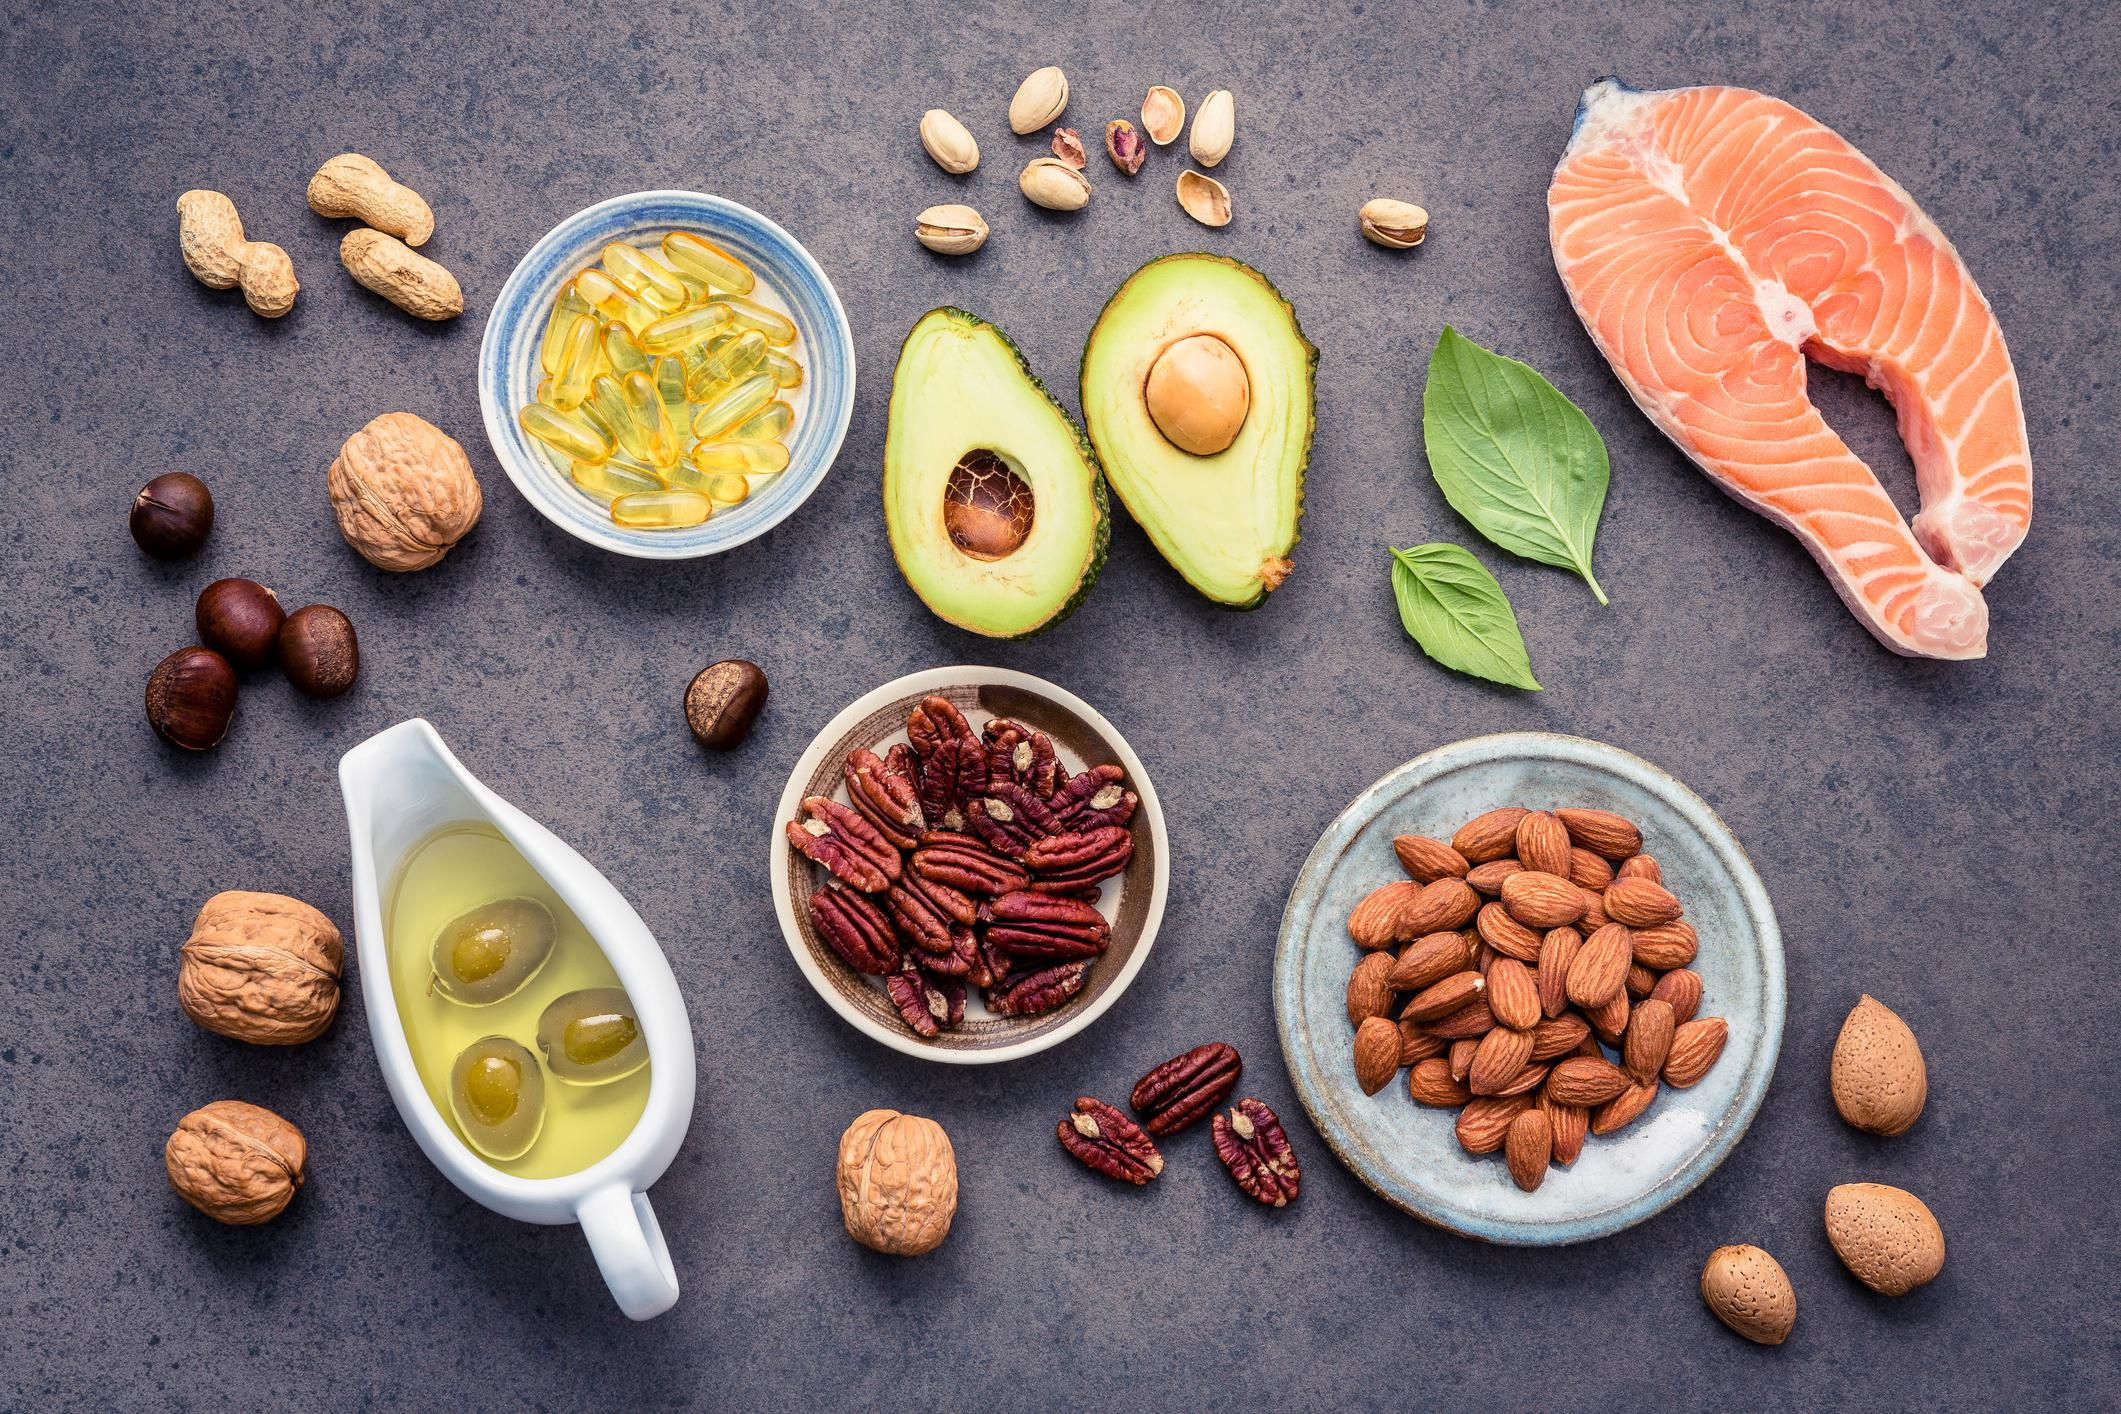 thedailymeal.com - These Are the Foods Neurologists Eat for Brain Health